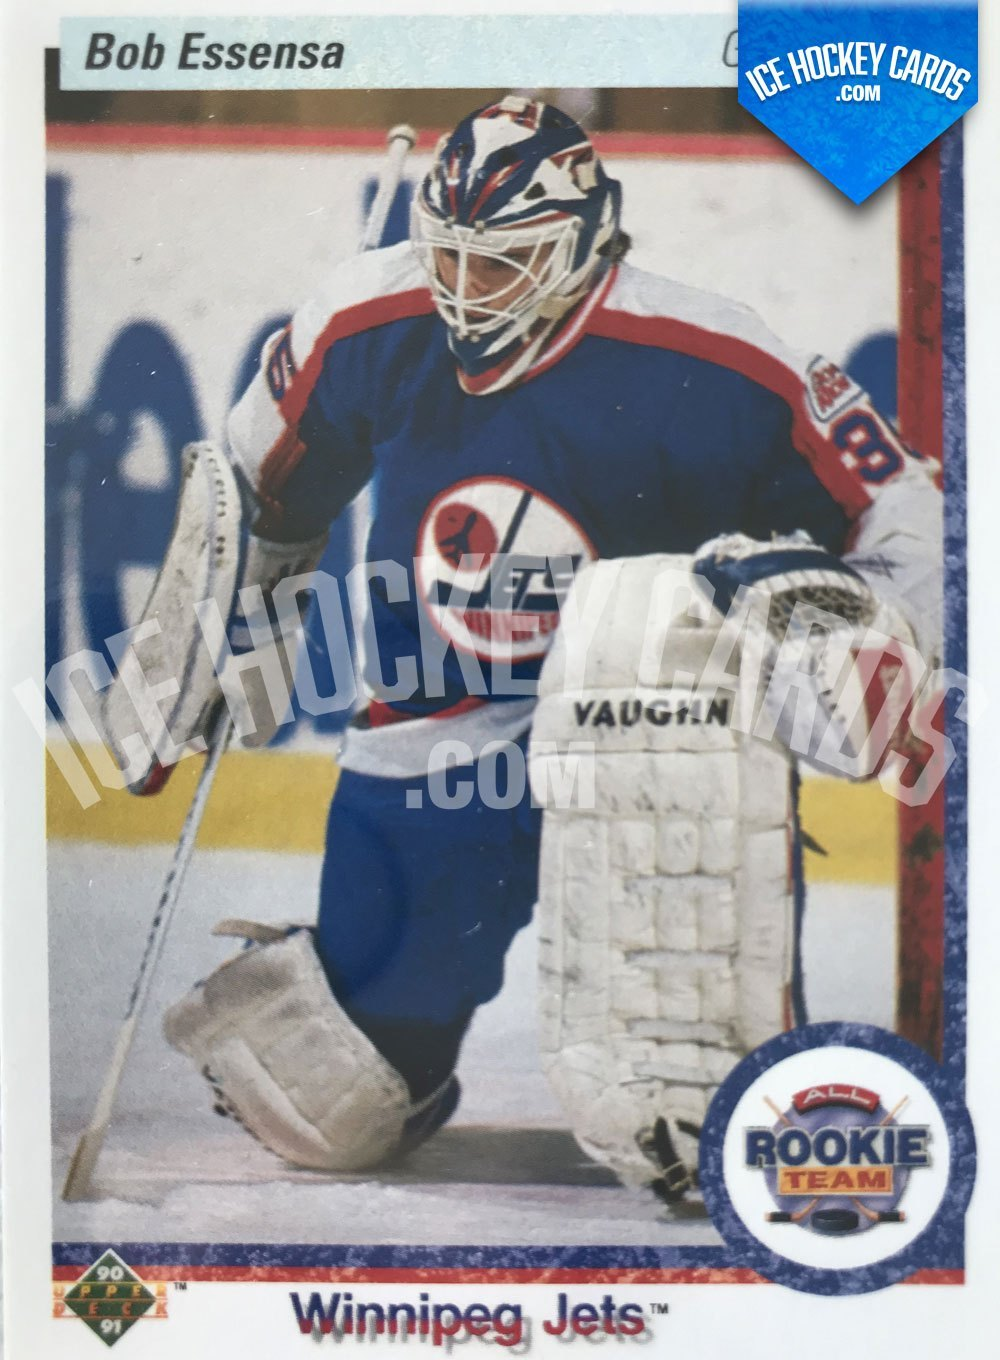 Upper Deck - 90-91 - Bob Essensa All Rookie Team Card